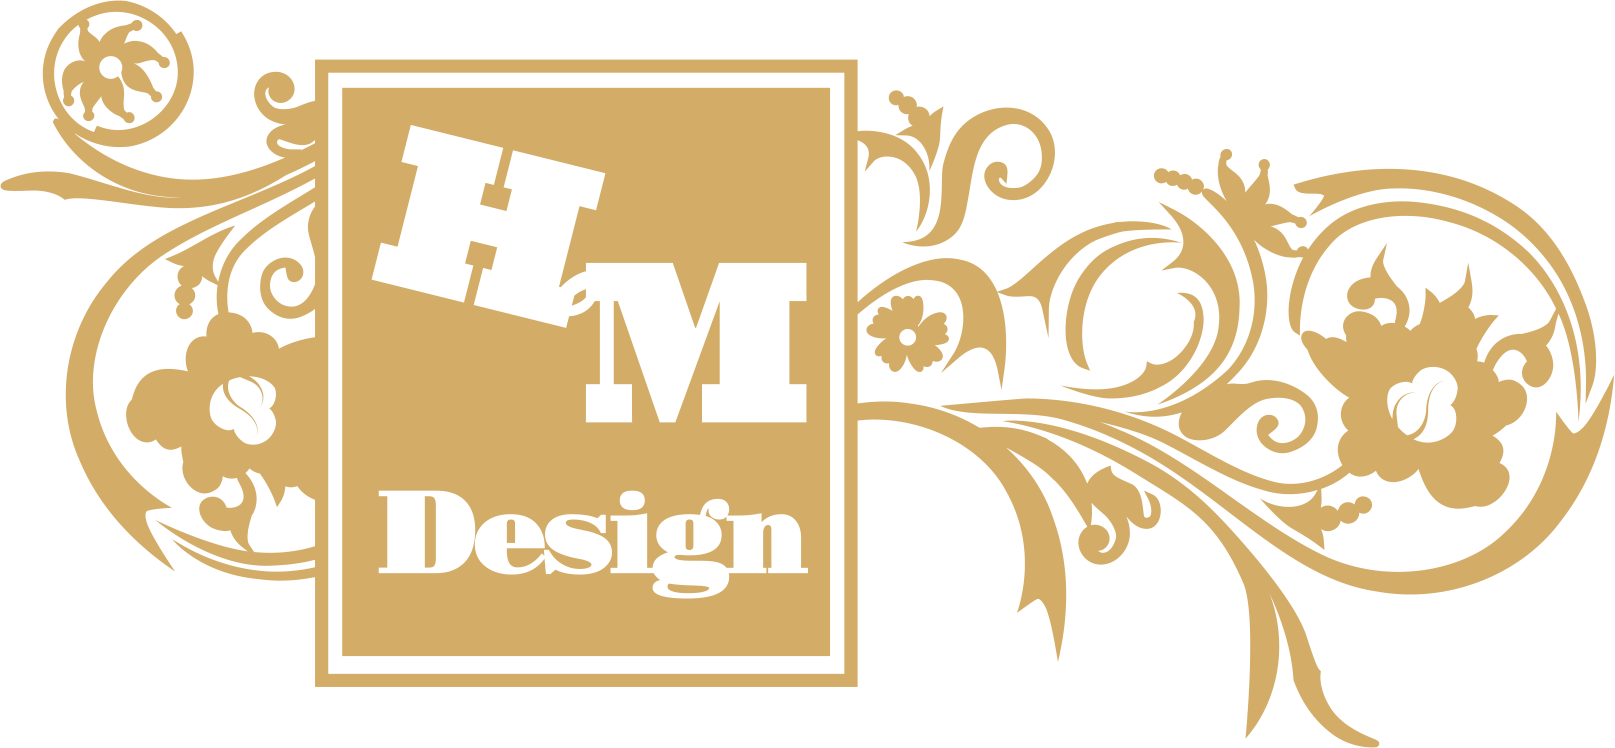 <b>Notice</b>: Undefined variable: name in <b>/home/hmdesign/hmdesign.ua/www/catalog/view/theme/hm-shop/template/common/footer.tpl</b> on line <b>34</b>